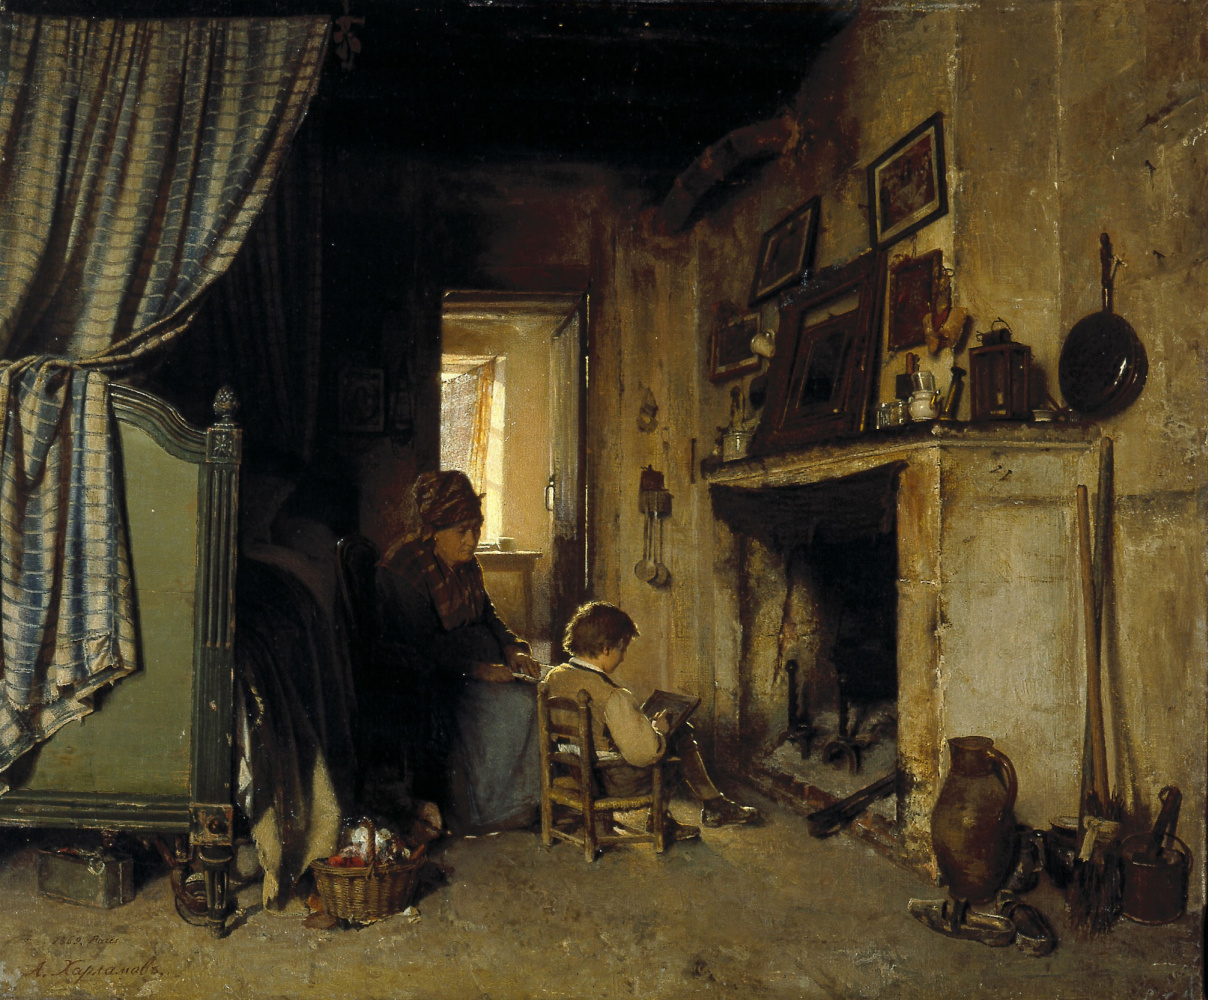 Alexey Alekseevich Kharlamov. Grandmother with her granddaughter. 1869